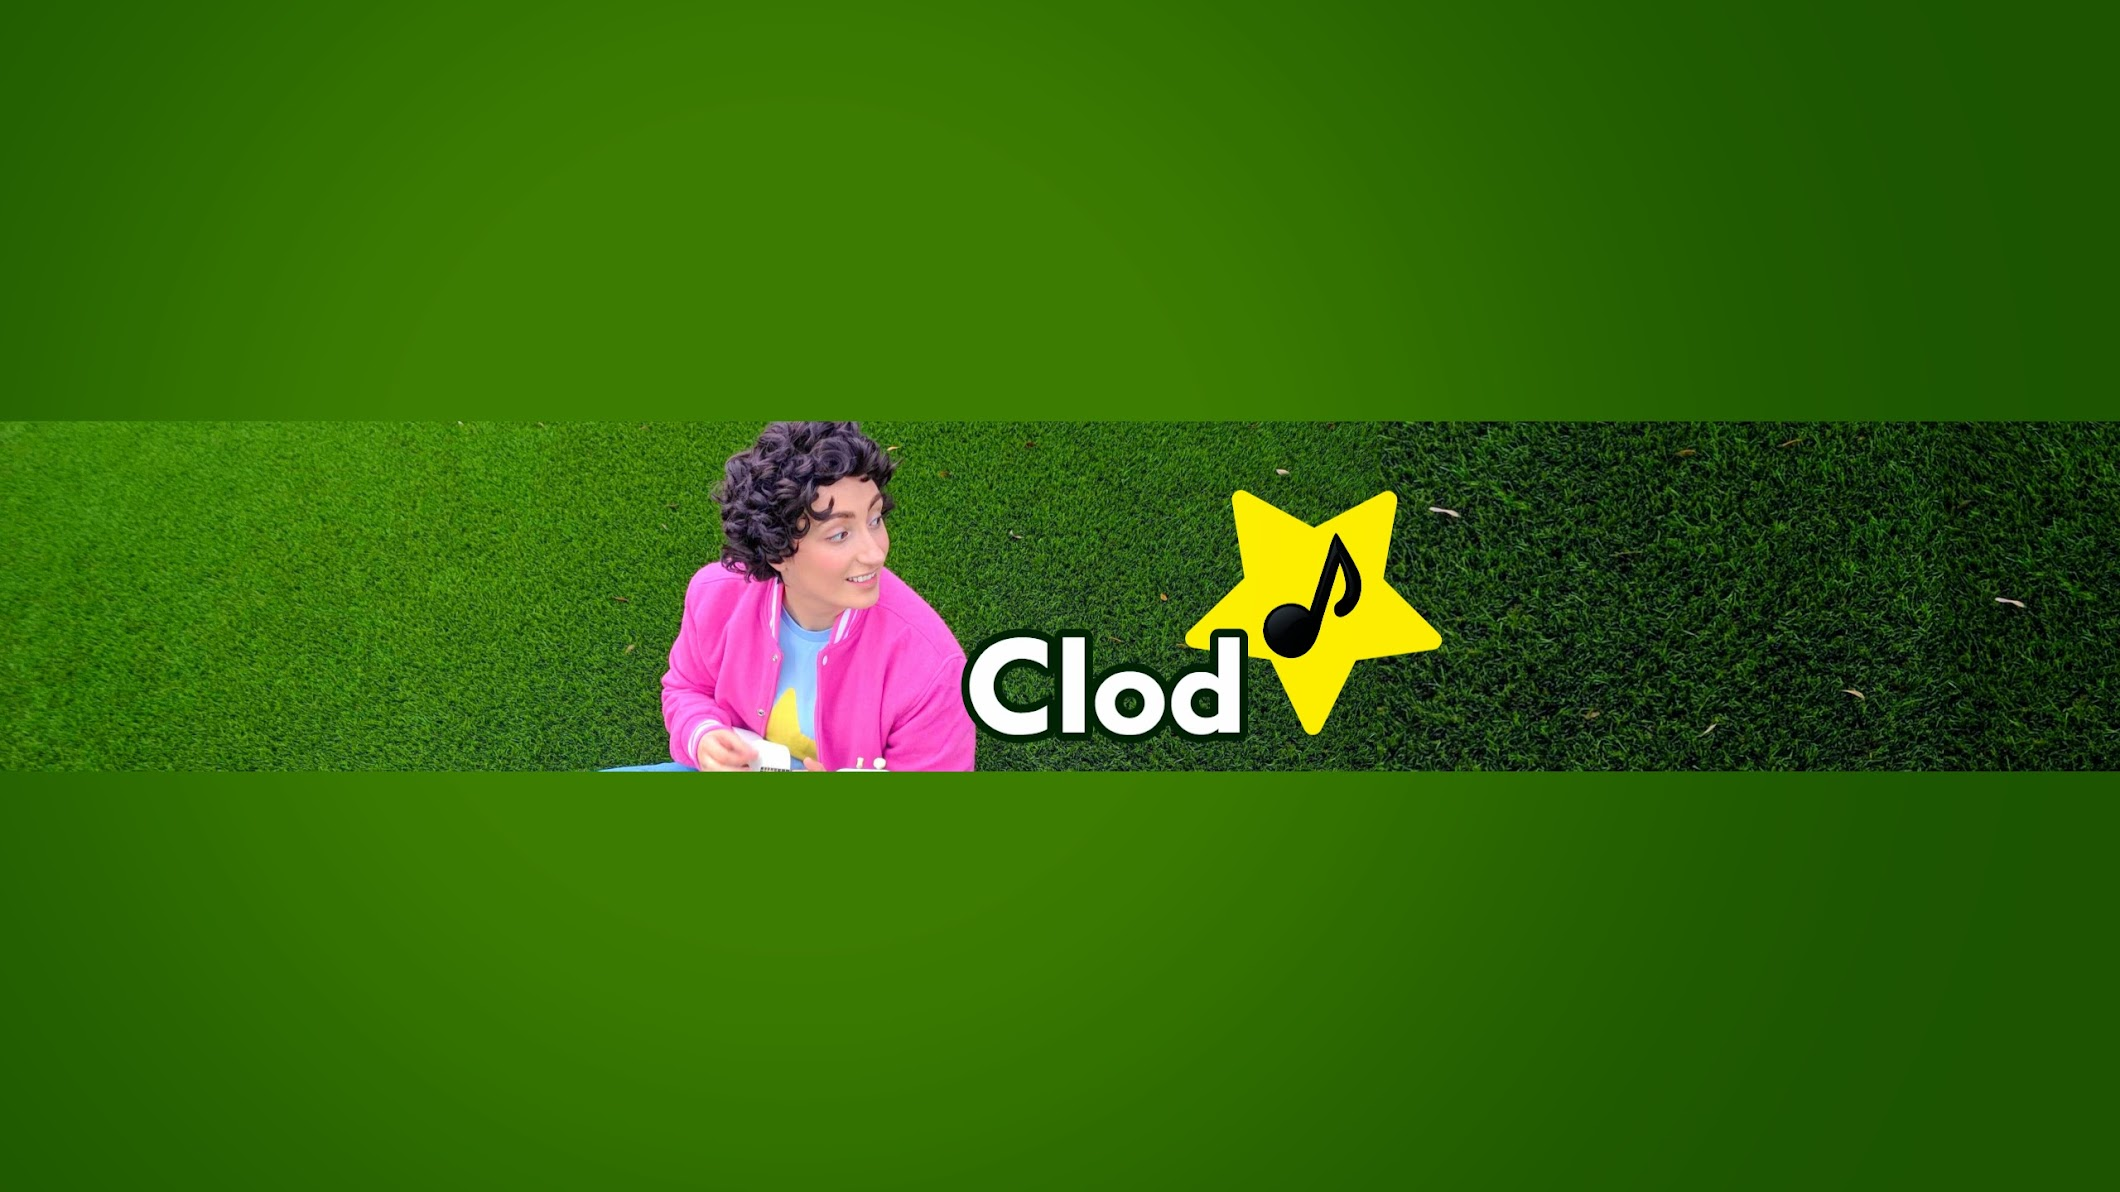 For the Love of Clod